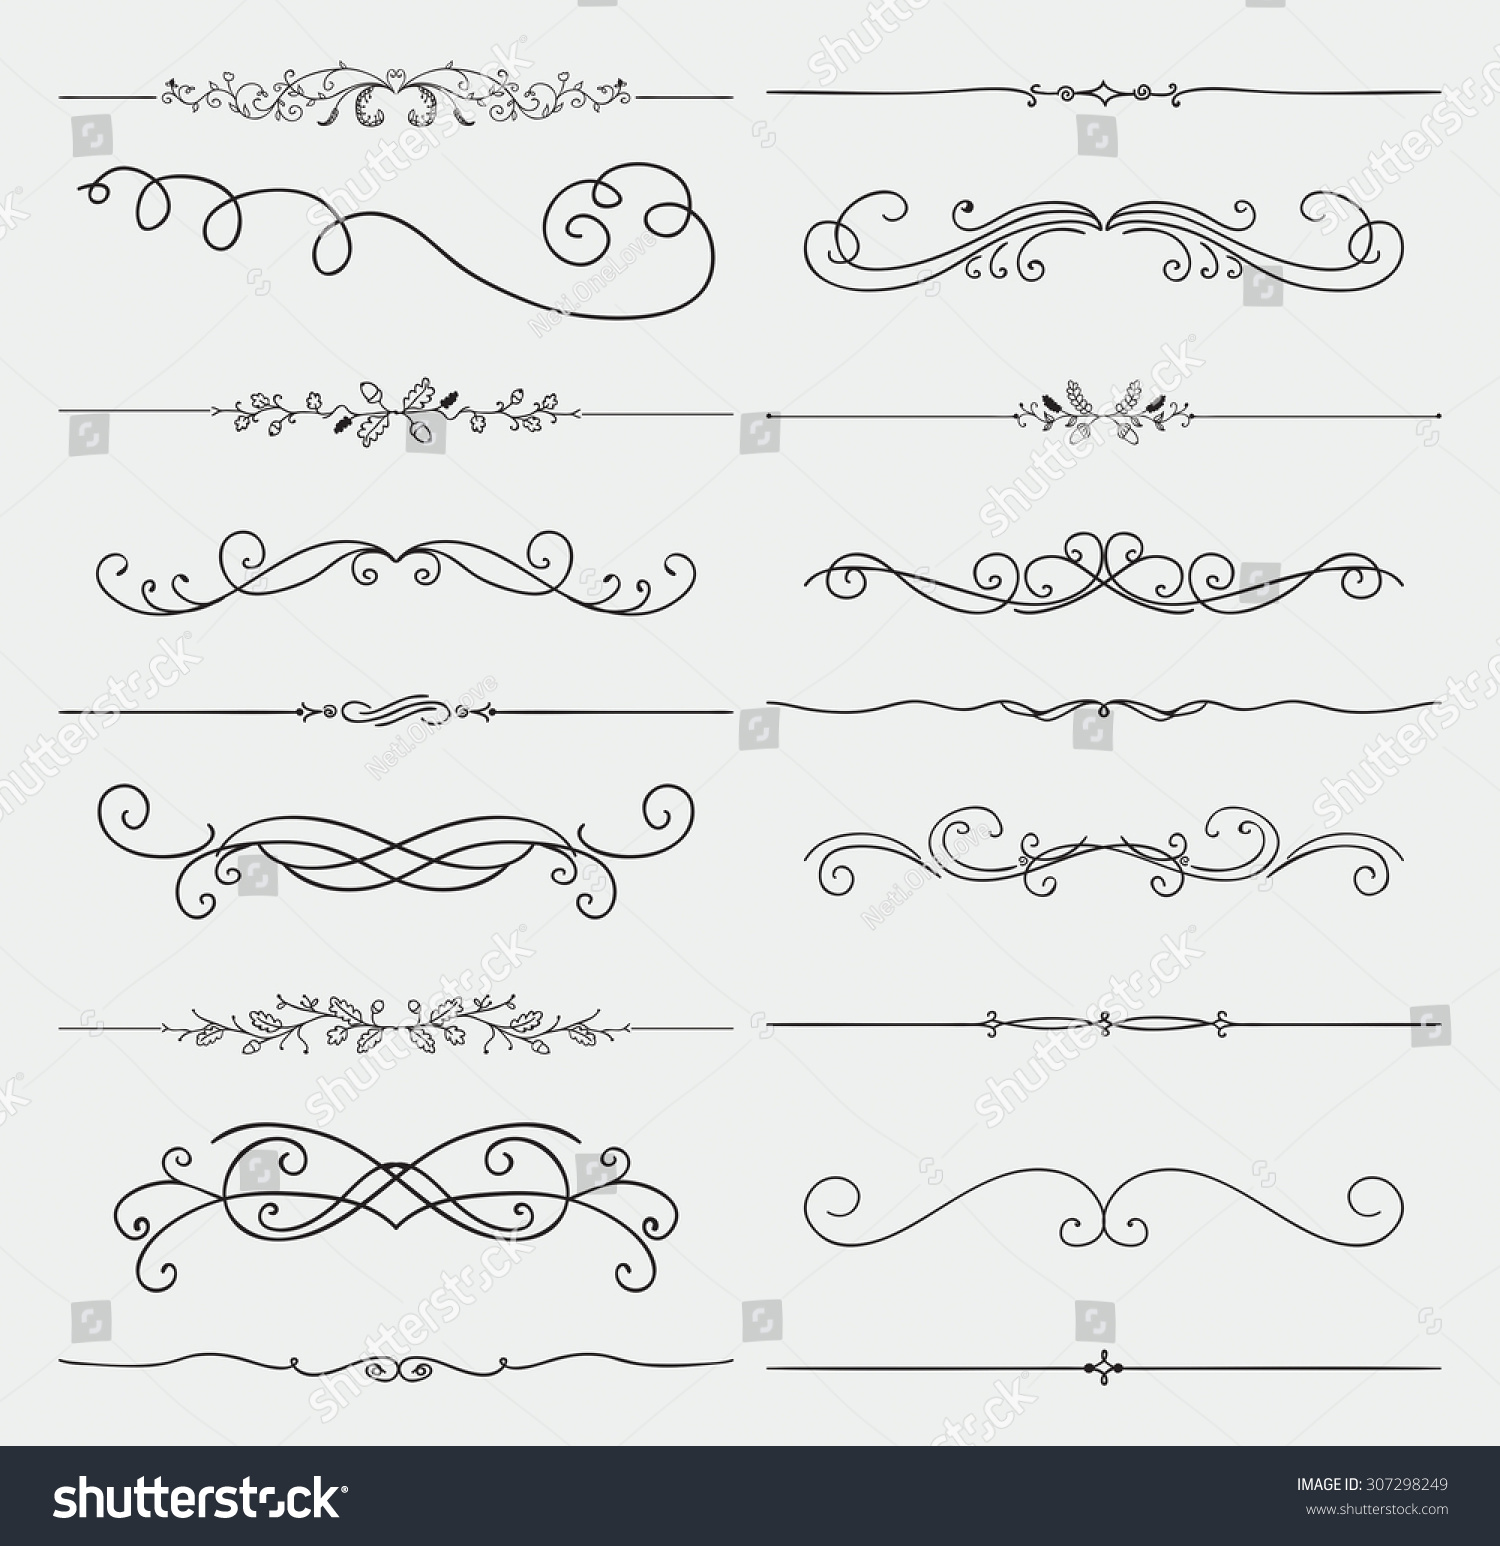 Rustic Scroll: Set Of Black Hand Drawn Rustic Doodle Design Elements